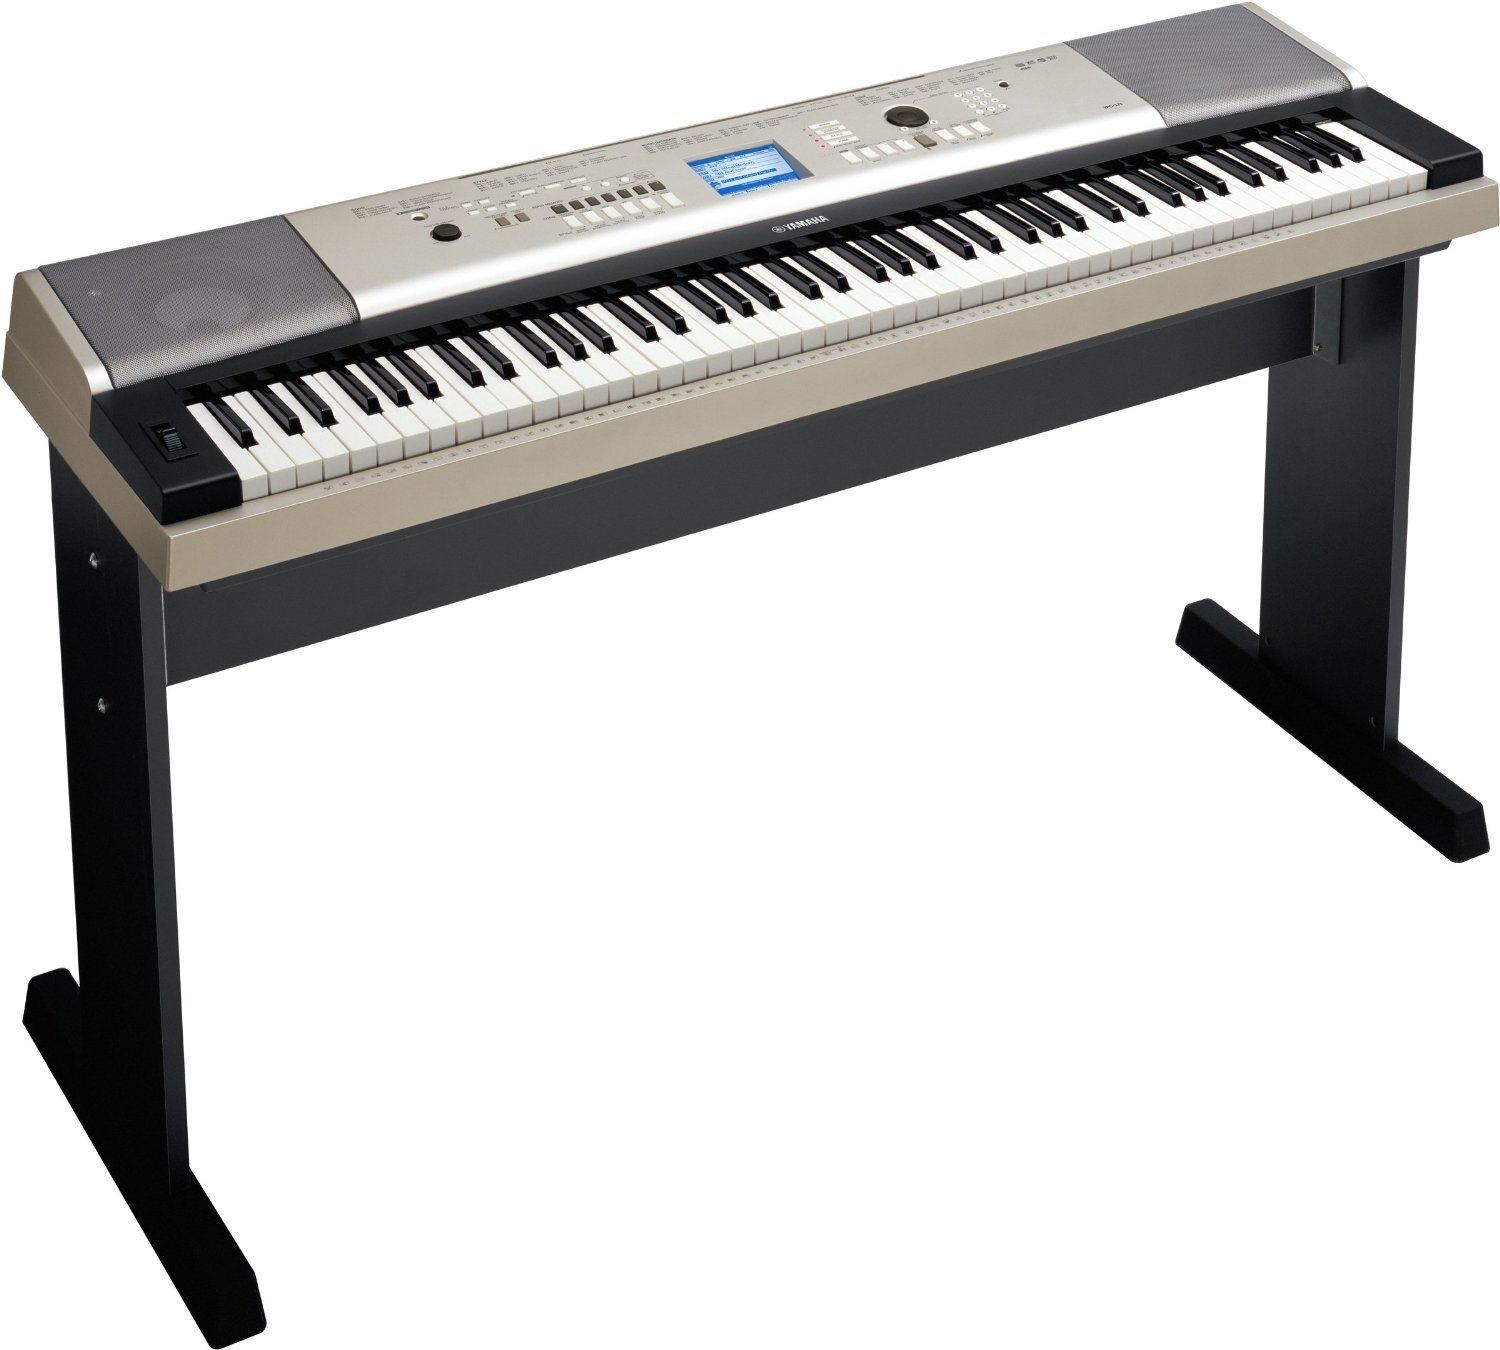 yamaha ypg 535 digital piano review. Black Bedroom Furniture Sets. Home Design Ideas